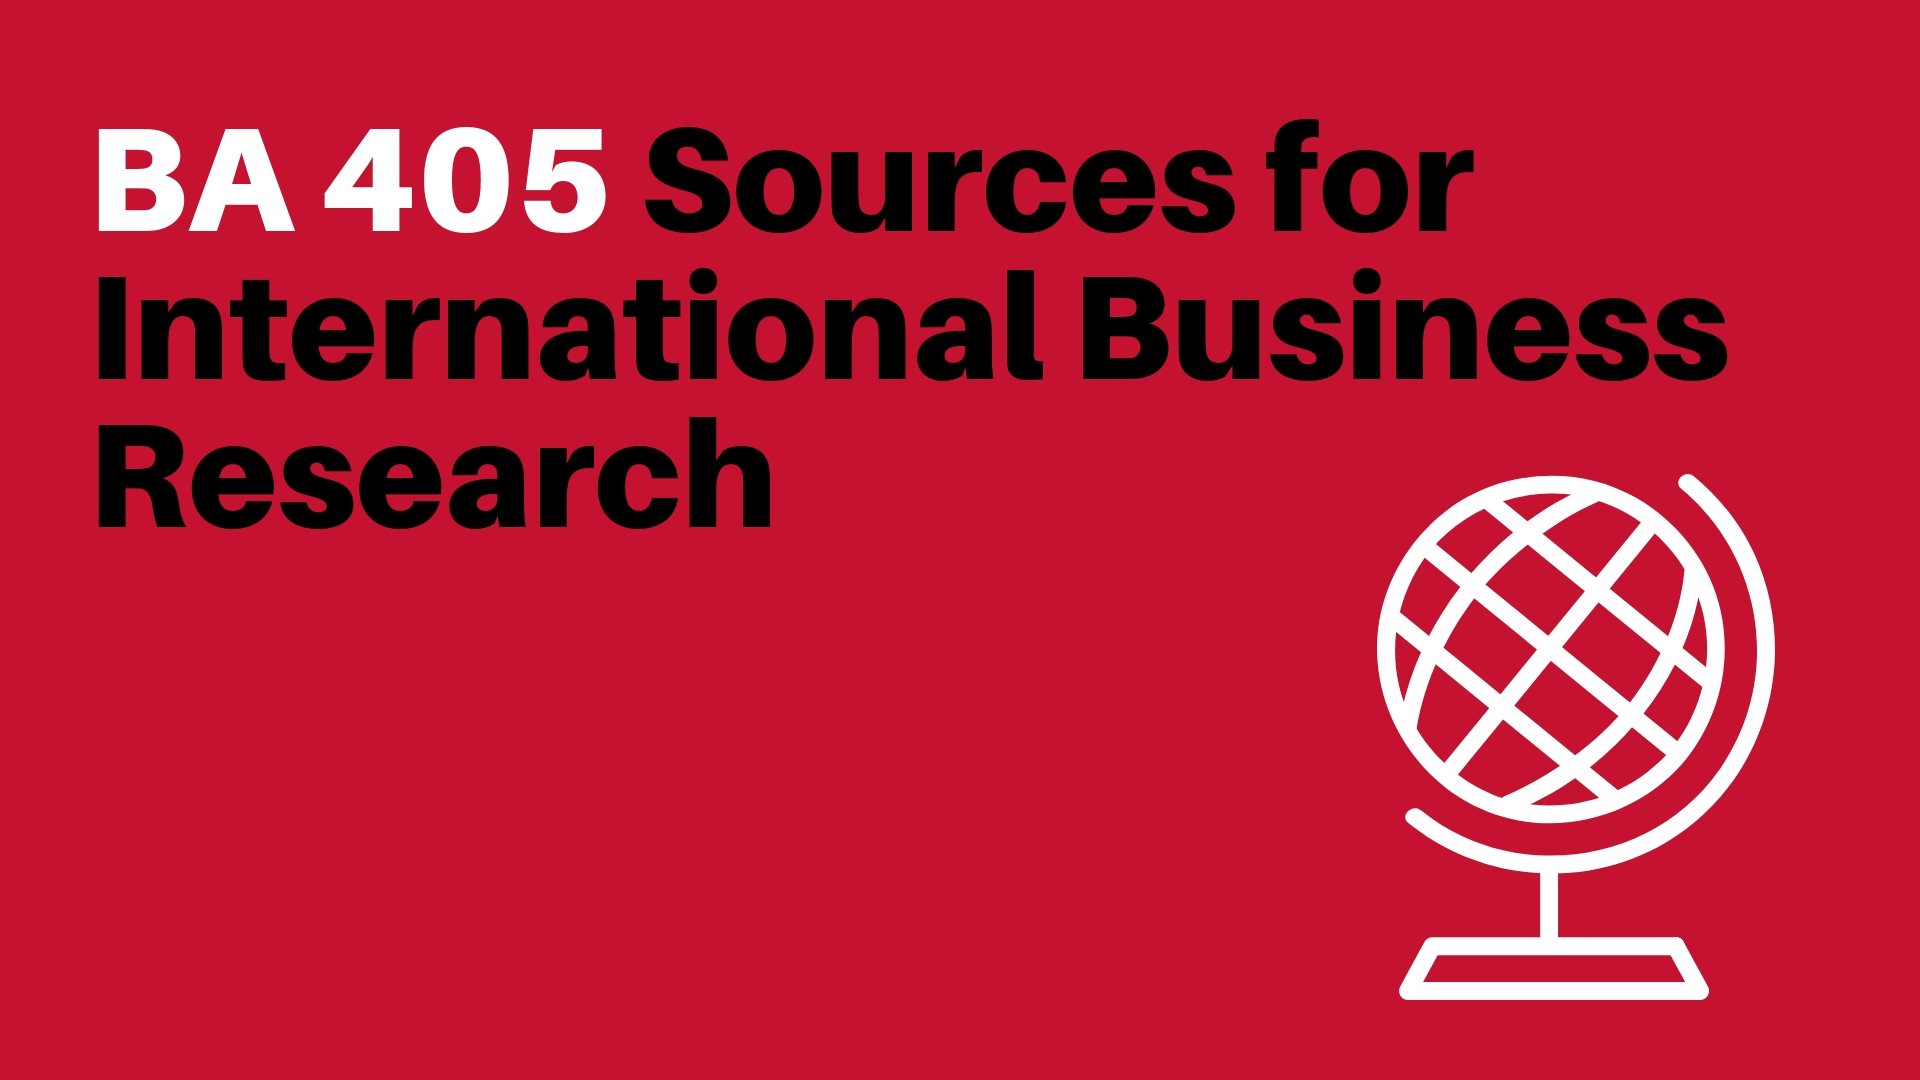 Sources for International Business Research